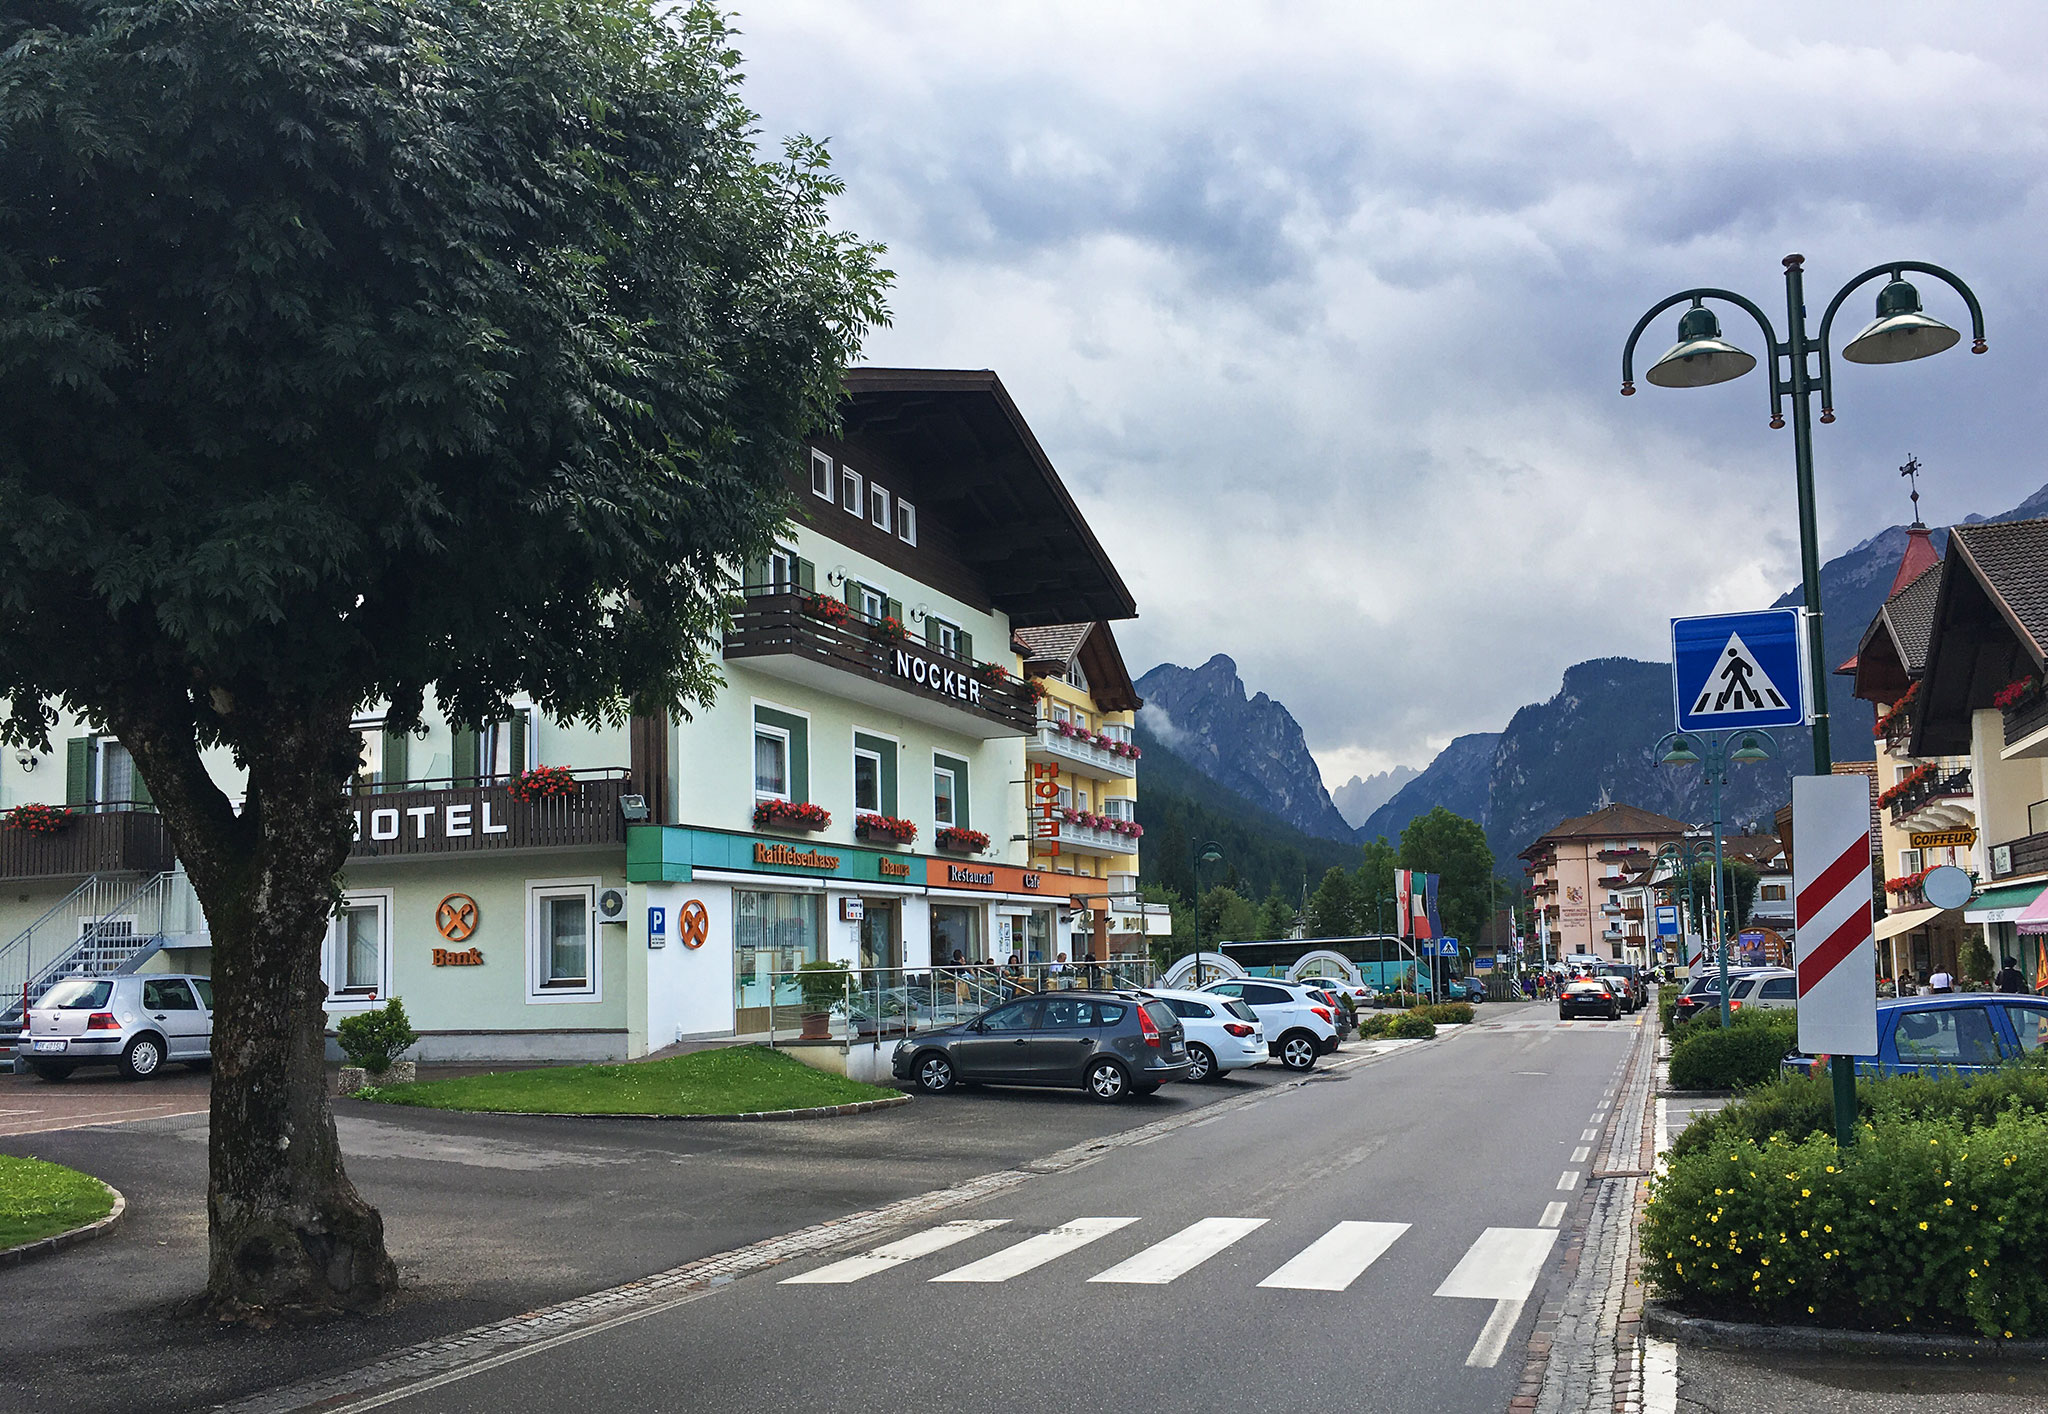 In Italy, Street view in Toblach (Dobbiaco) looking south in direction of Cortina d'Amprezzo and Dolomites